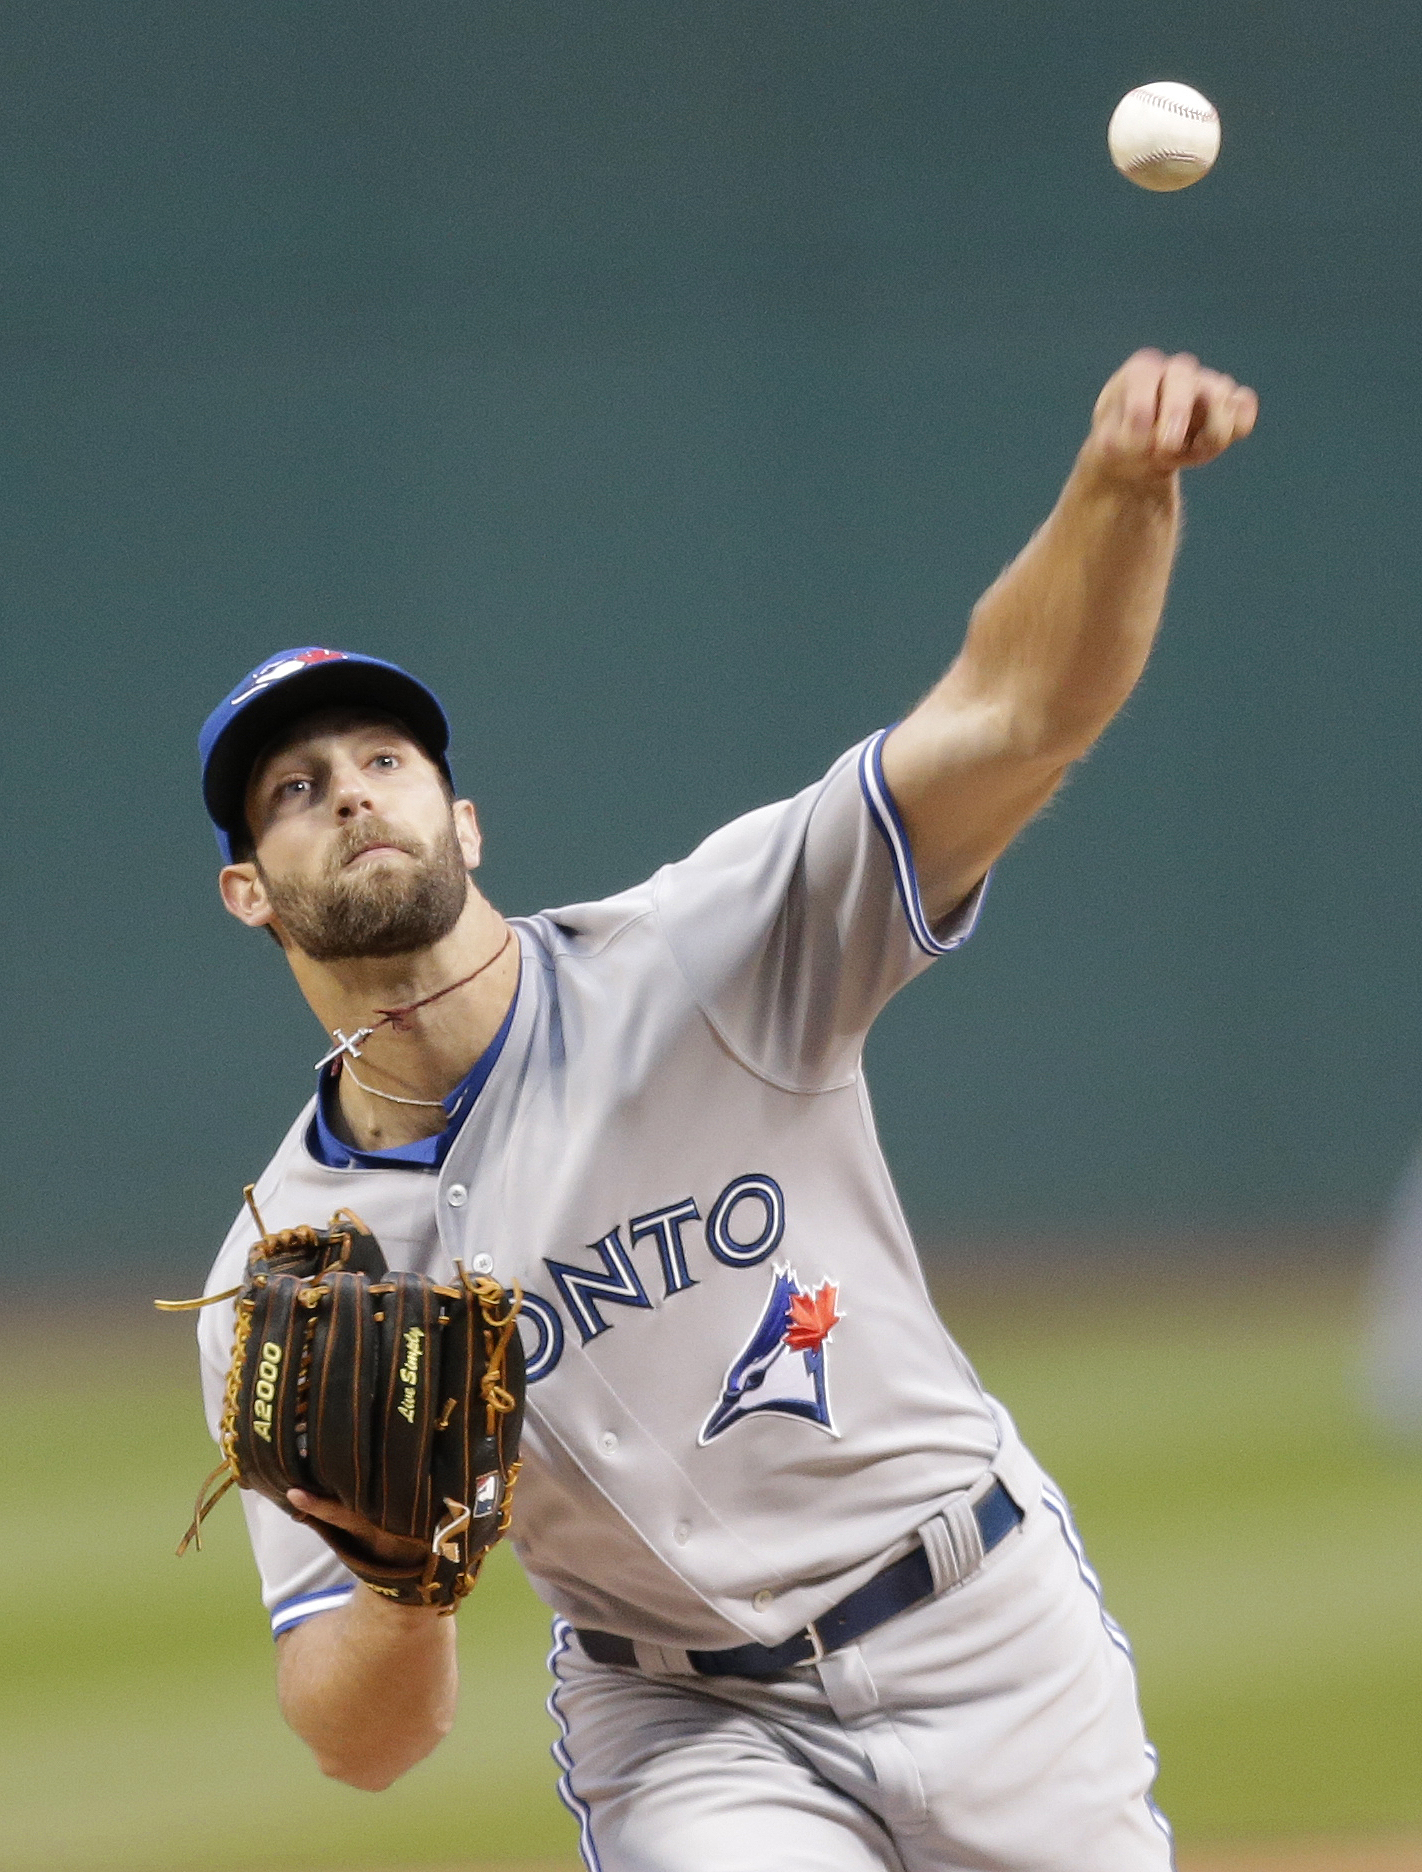 Toronto Blue Jays starting pitcher Daniel Norris delivers in the first inning of a baseball game against the Toronto Blue Jays, Thursday, April 30, 2015, in Cleveland. (AP Photo/Tony Dejak)